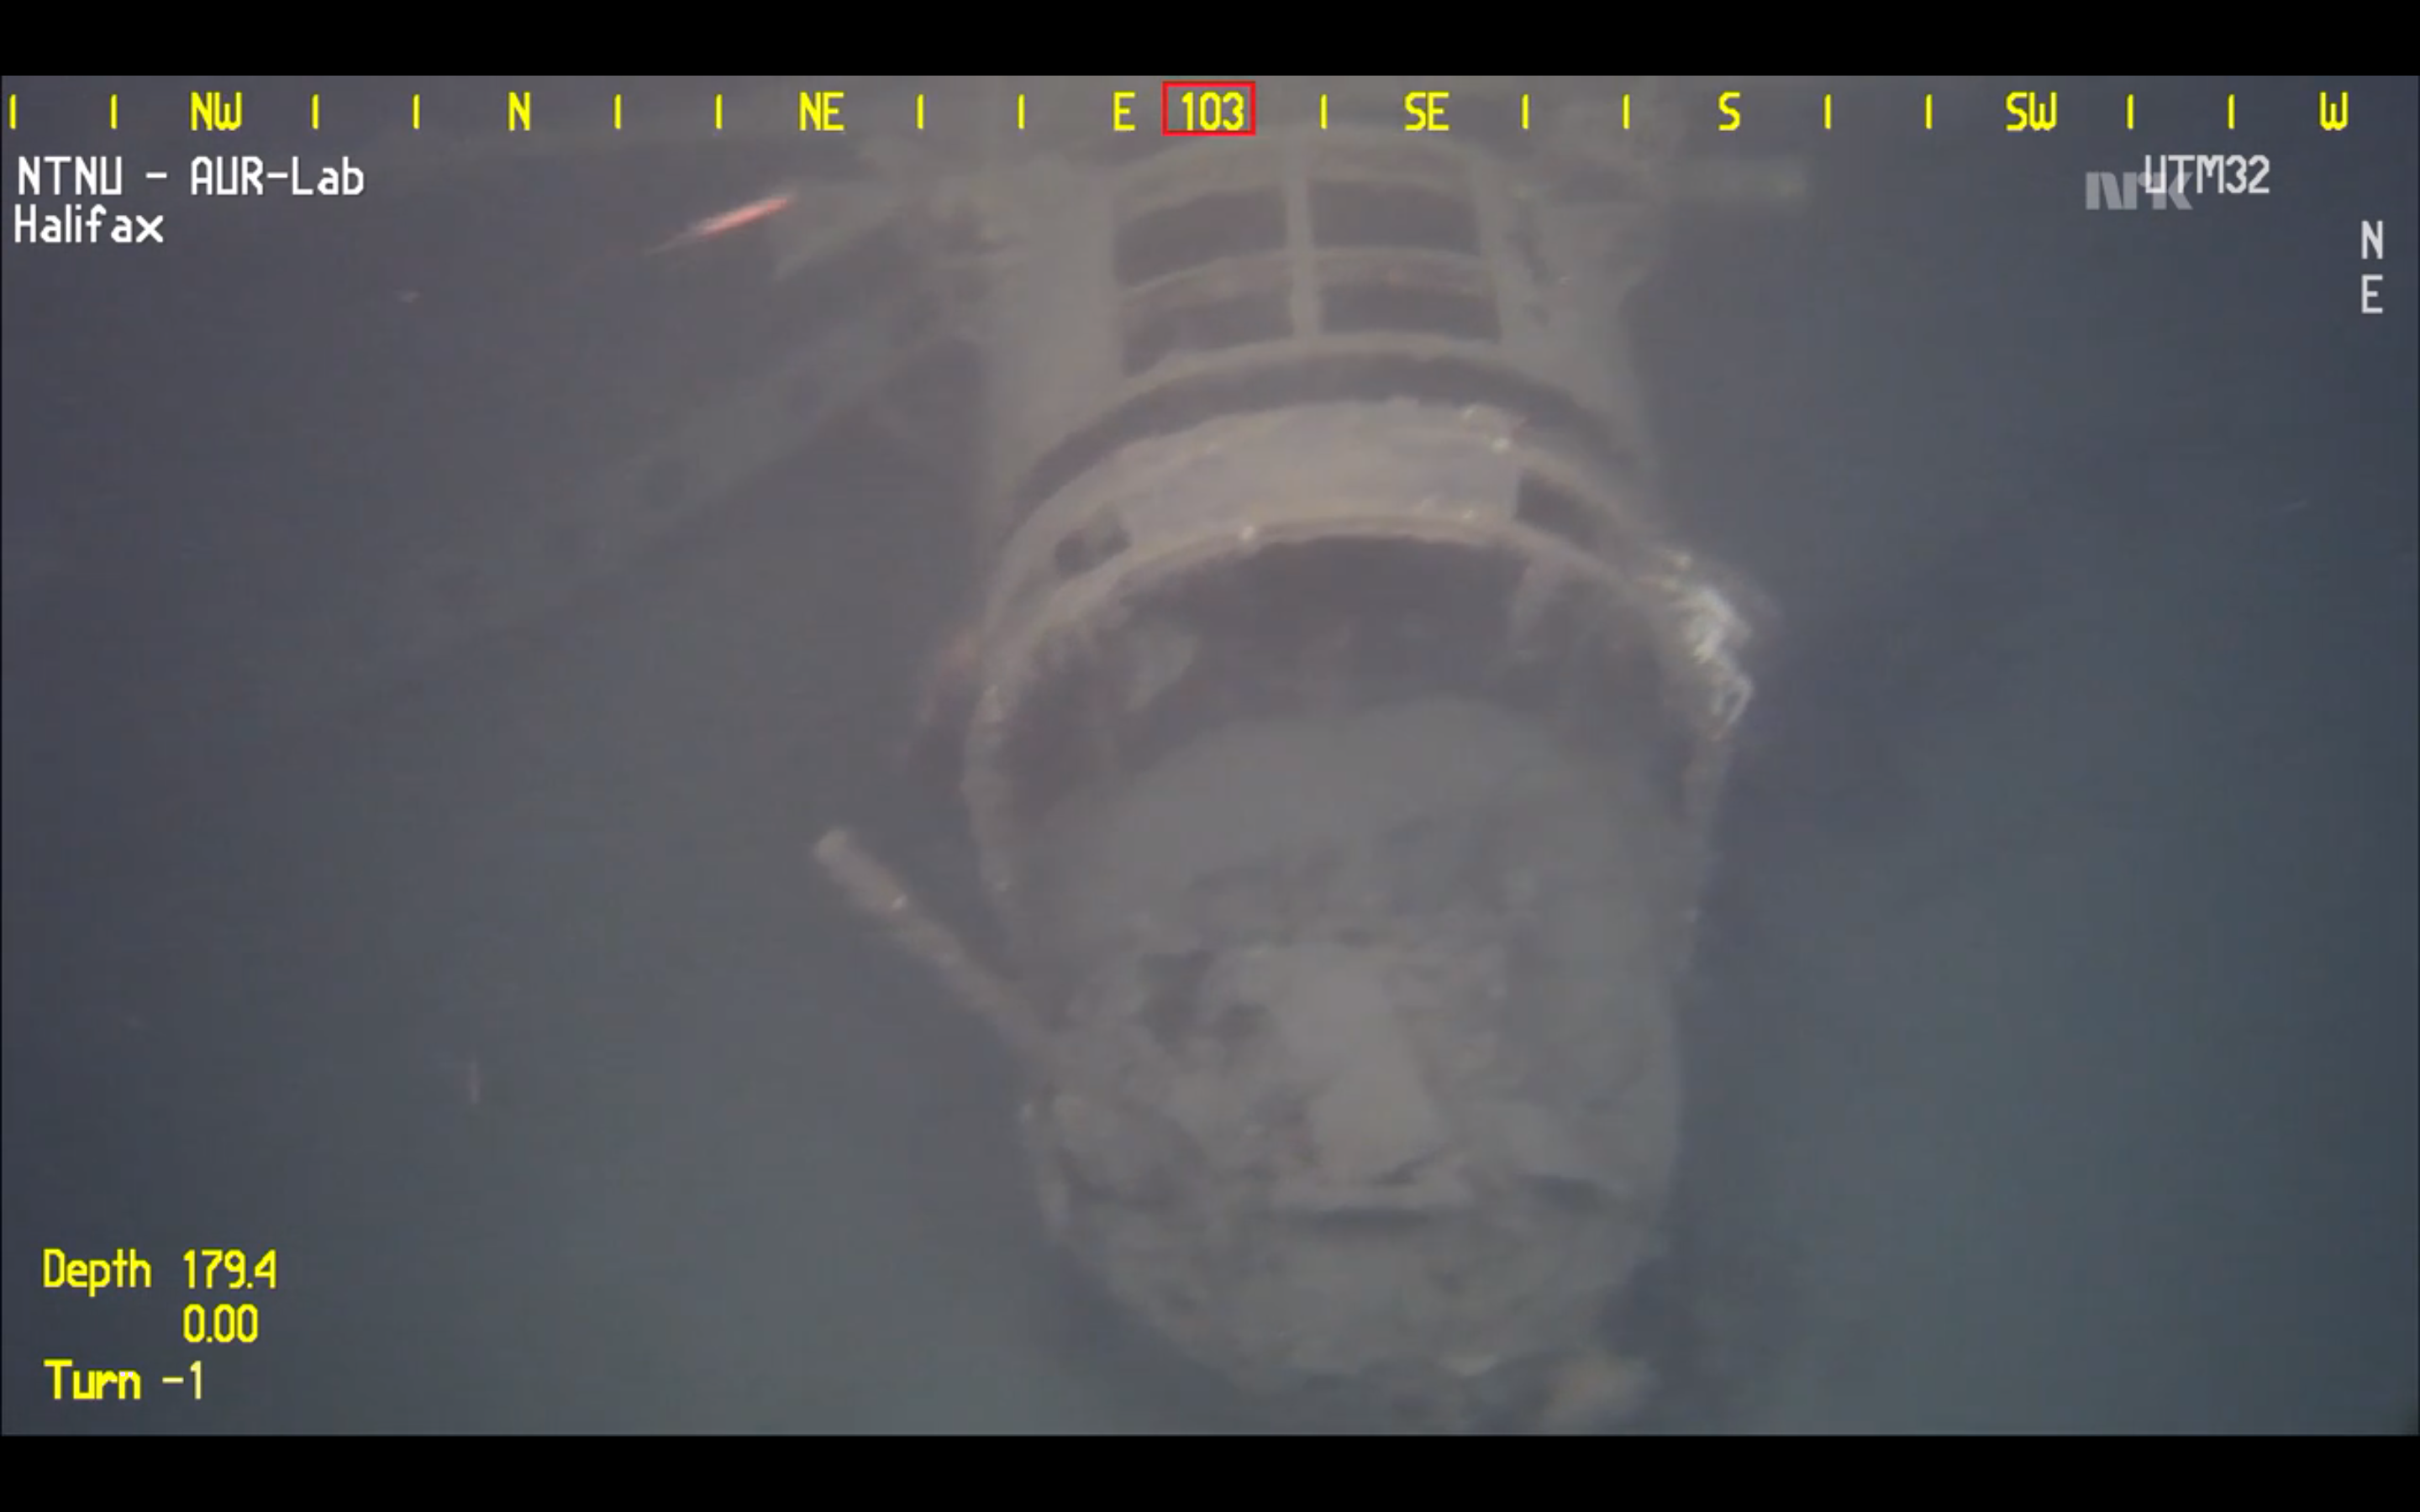 The Halifax's largely fragmented rear gun turret. (screen capture of video fromNTNU AUR-LAB)